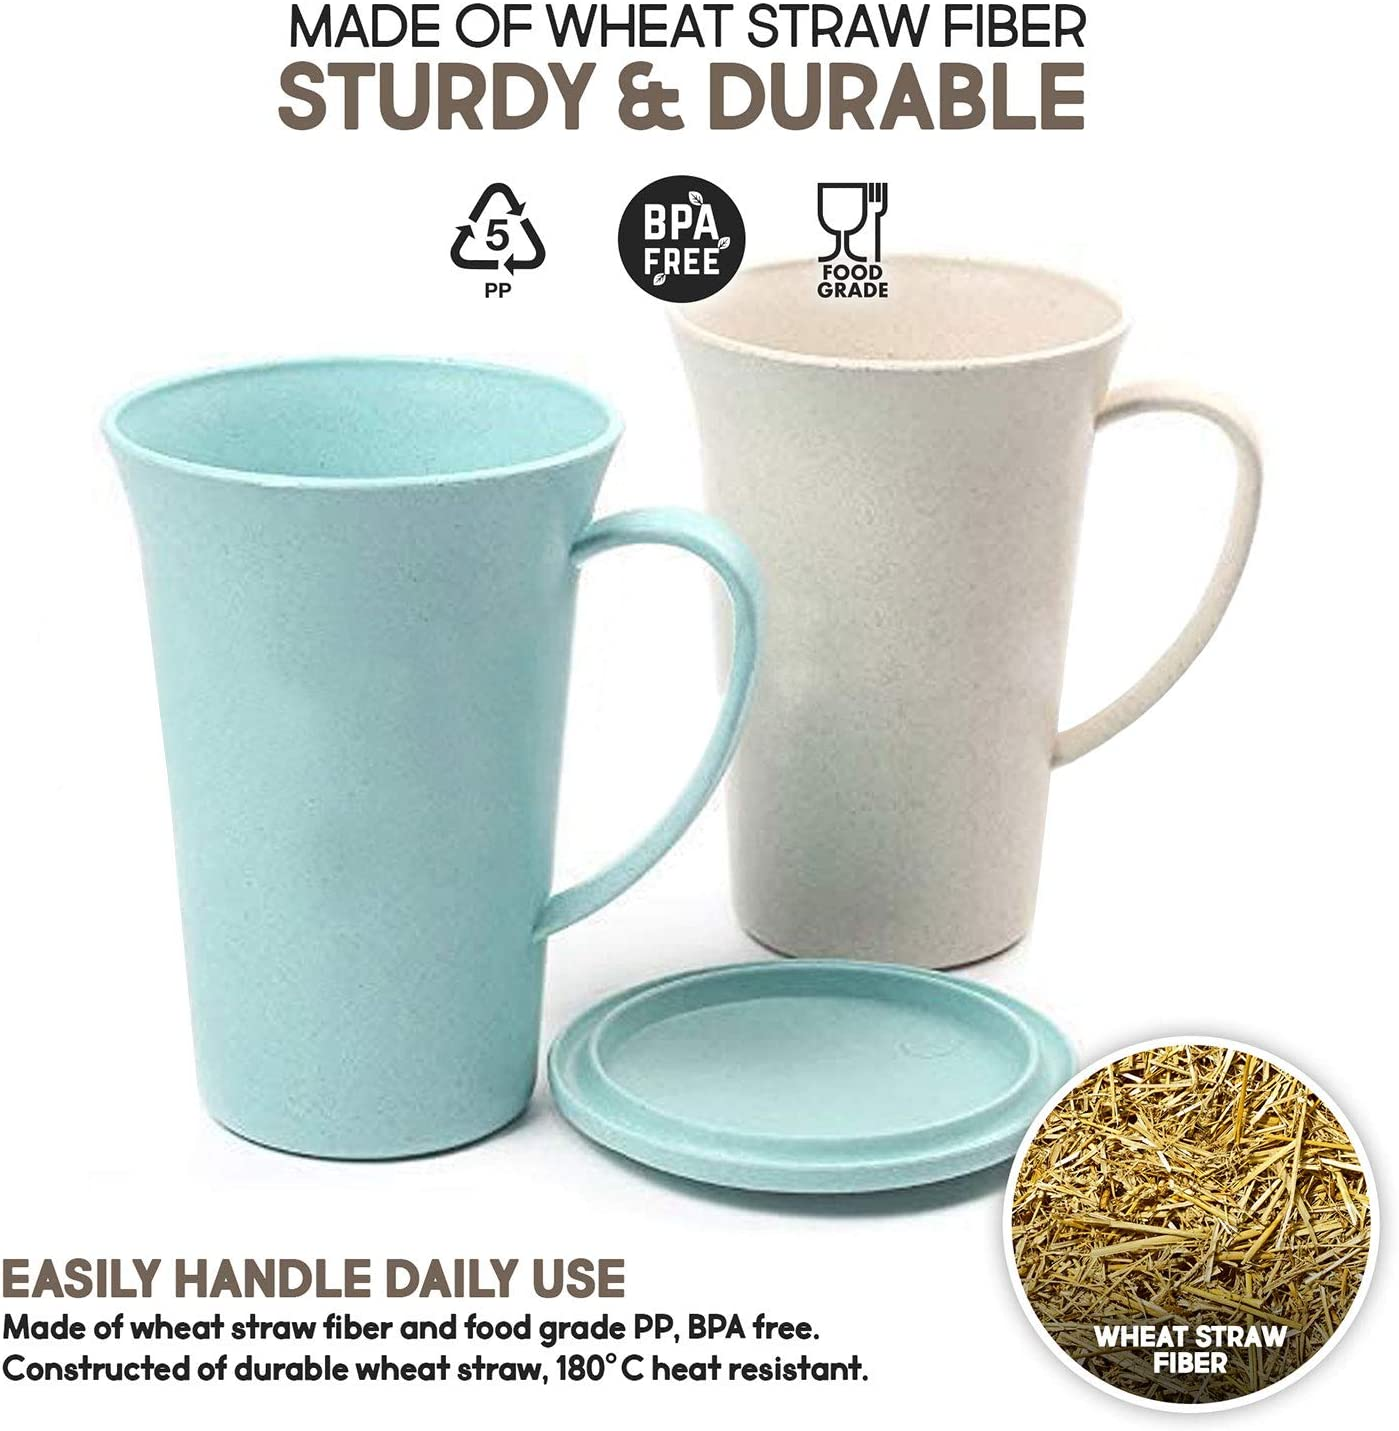 Sturdy and Durable Water Set of 6 Milk Tea 15.5 OZ Shopwithgreen Large Unbreakable Lightweight Mugs for Coffee Juice